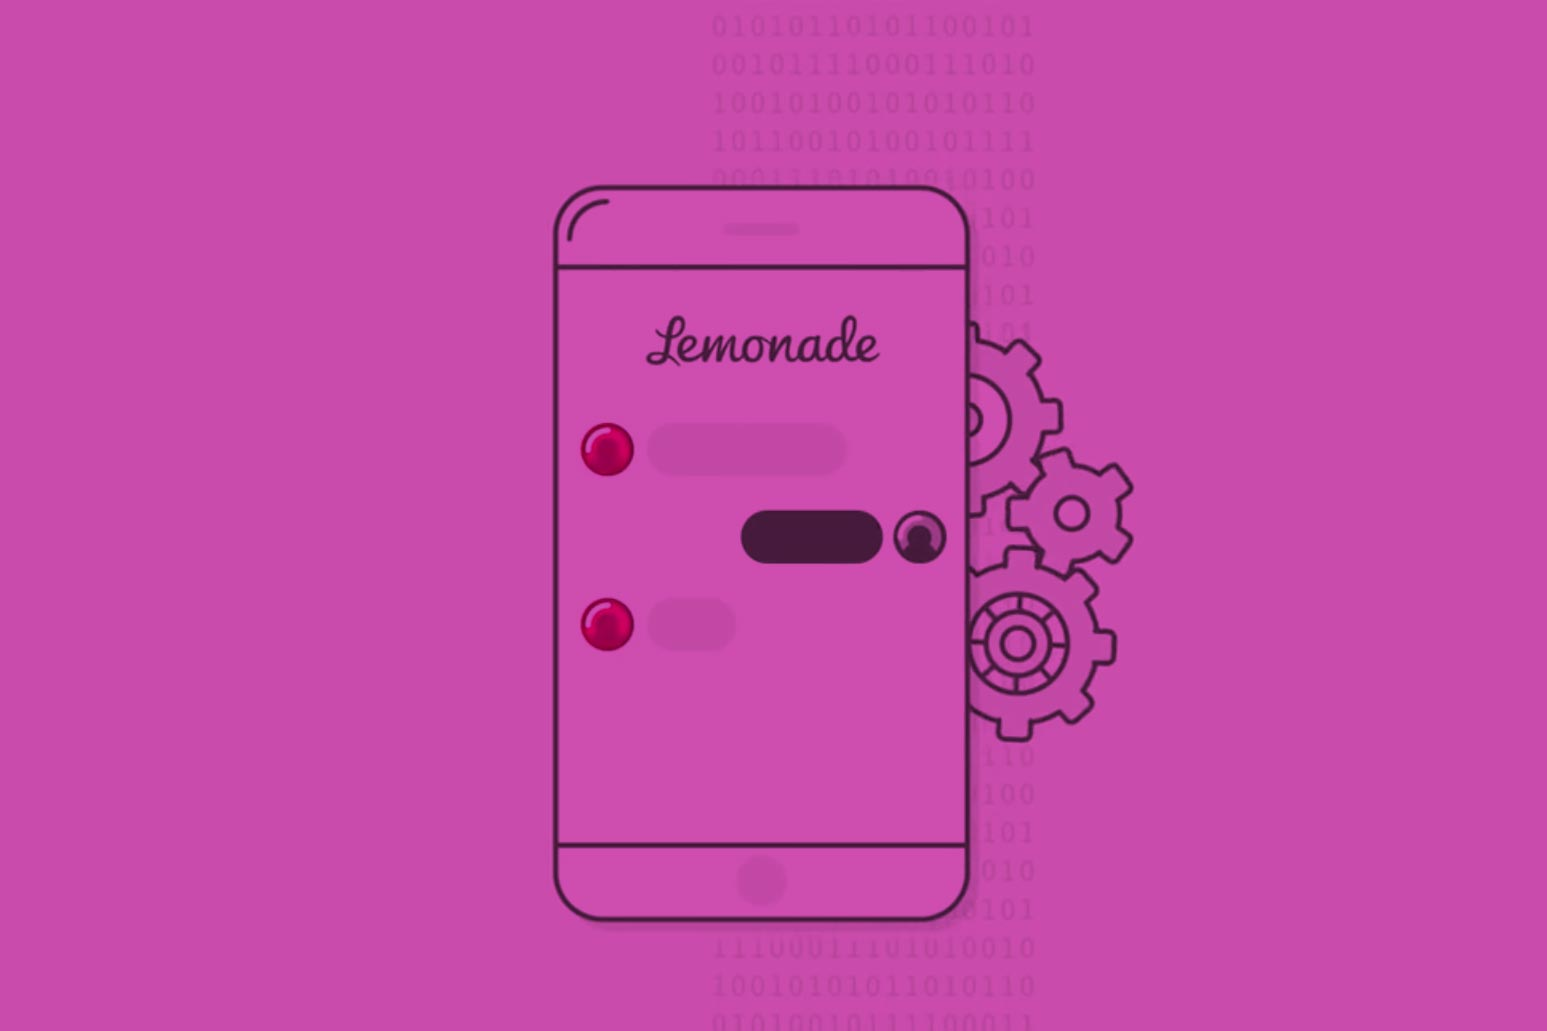 A German court has told startup insurer Lemonade to stop using the color magenta in marketing after an objection from T-Mobile